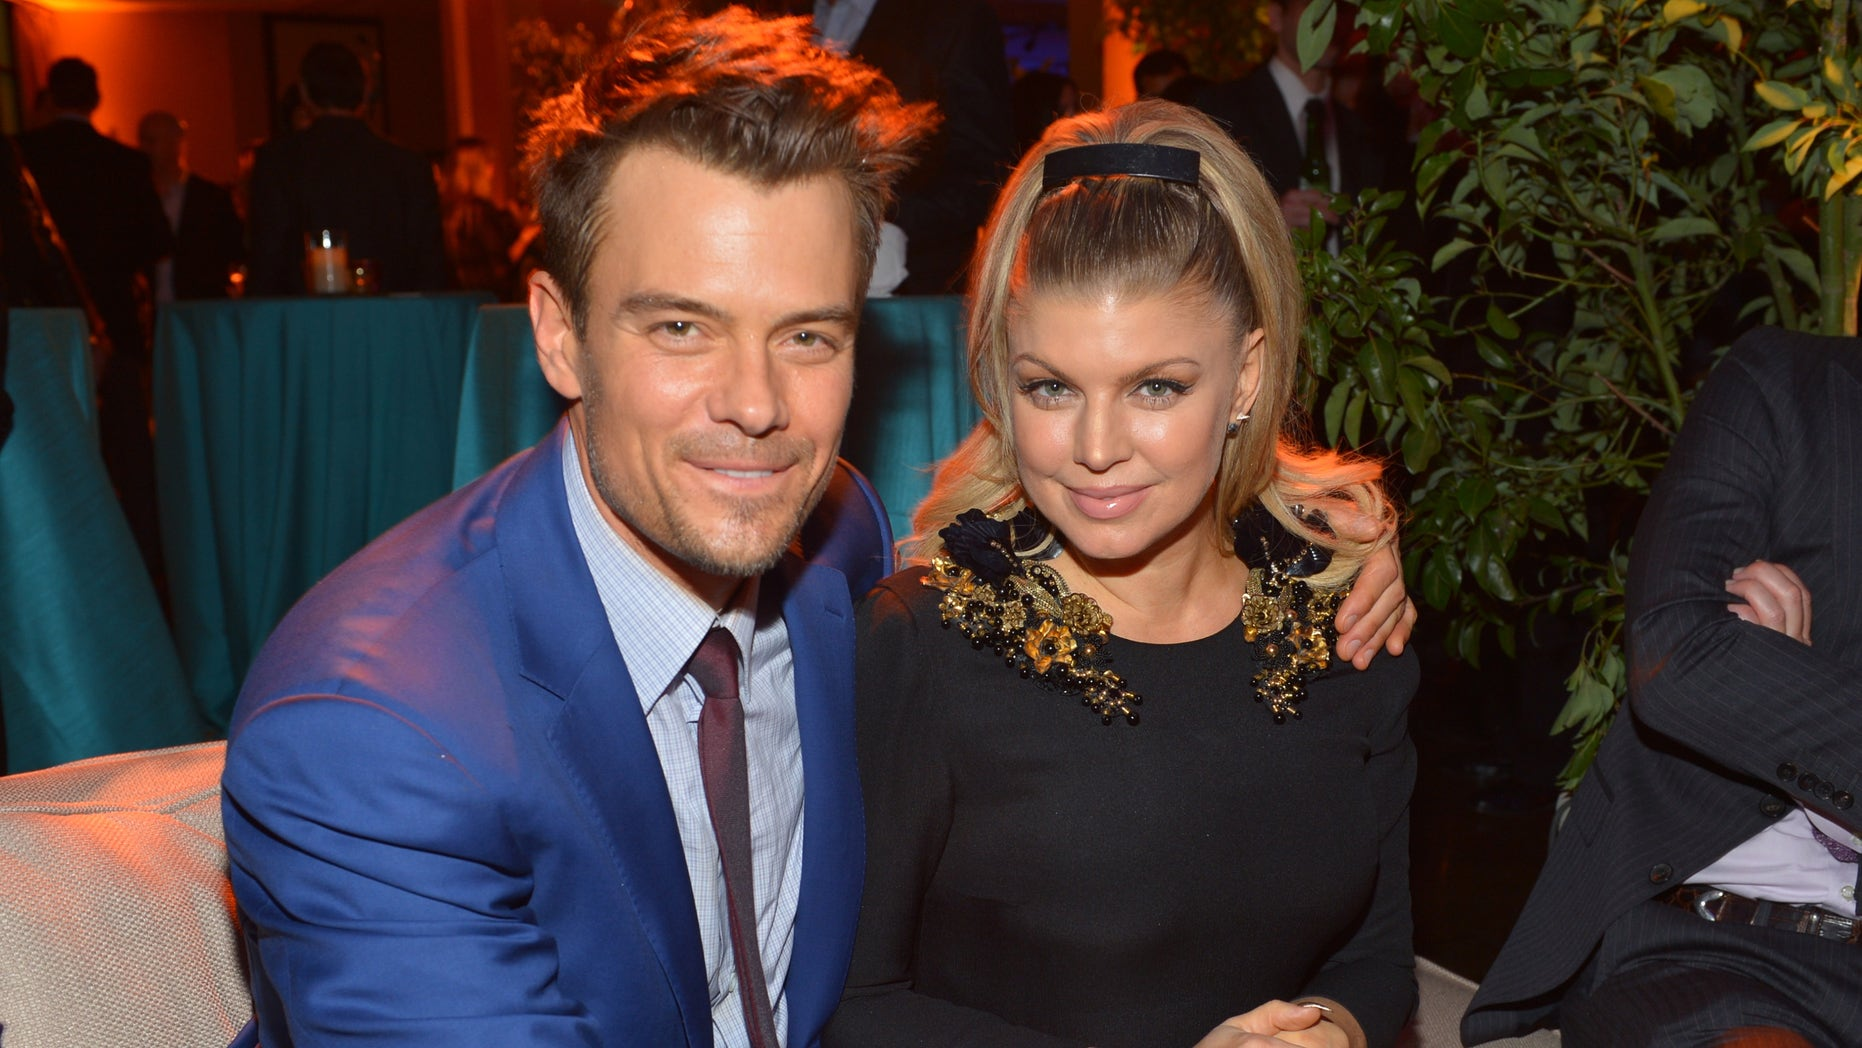 """HOLLYWOOD, CA - FEBRUARY 05:  Actor Josh Duhamel (L) and actress/singer Fergie attend the premiere of Relativity Media's """"Safe Haven"""" after party at The Terrace At Hollywood & Highland on February 5, 2013 in Hollywood, California.  (Photo by Alberto E. Rodriguez/Getty Images for Relativity Media)"""